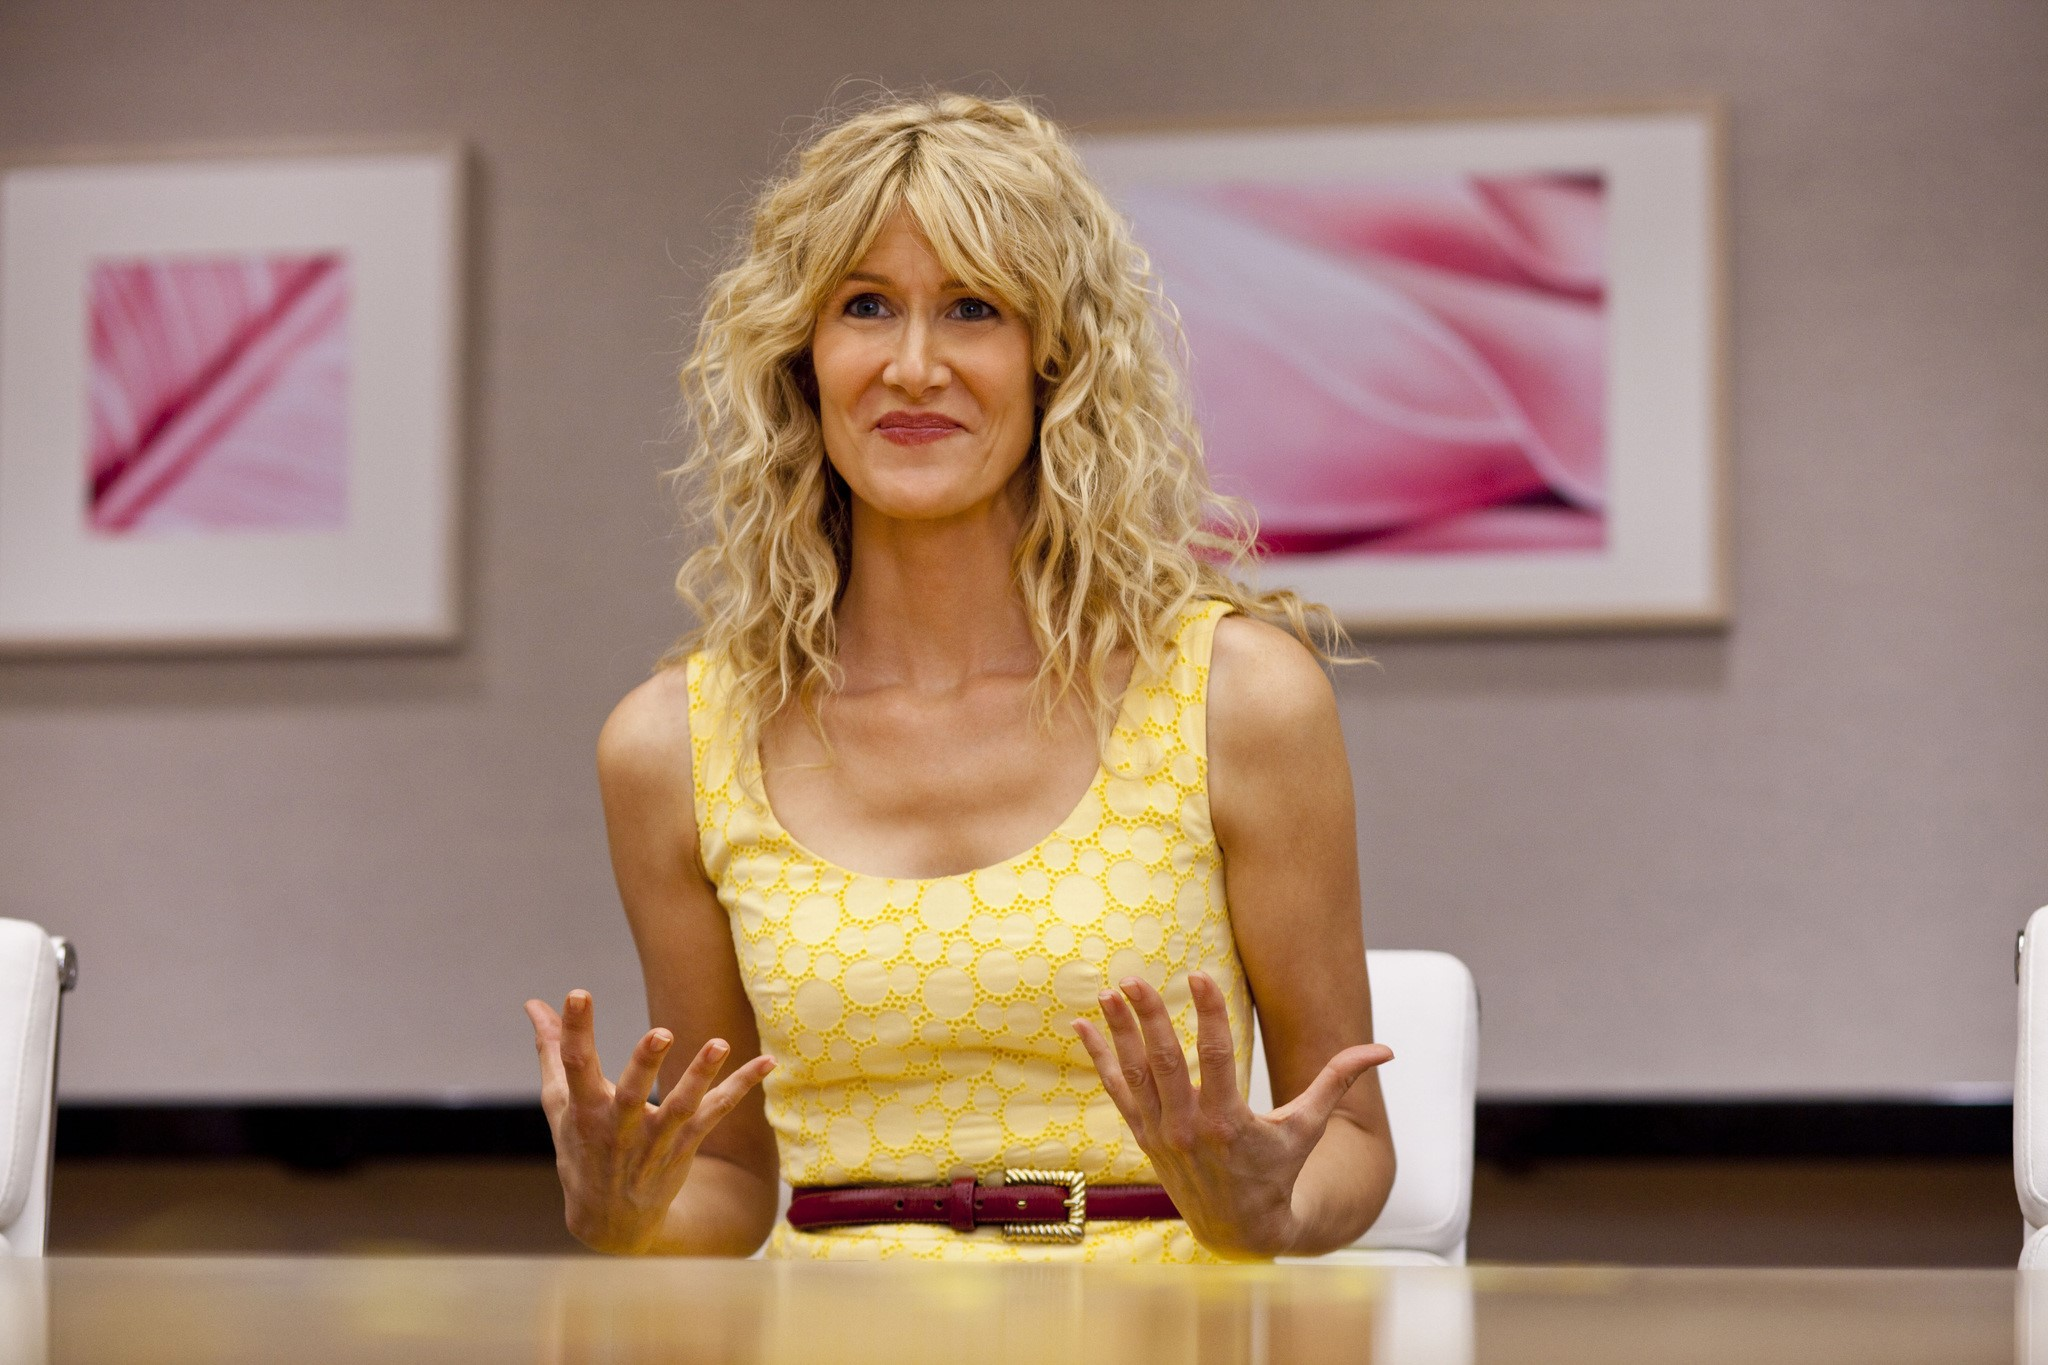 Laura Dern Wallpapers for Laptop